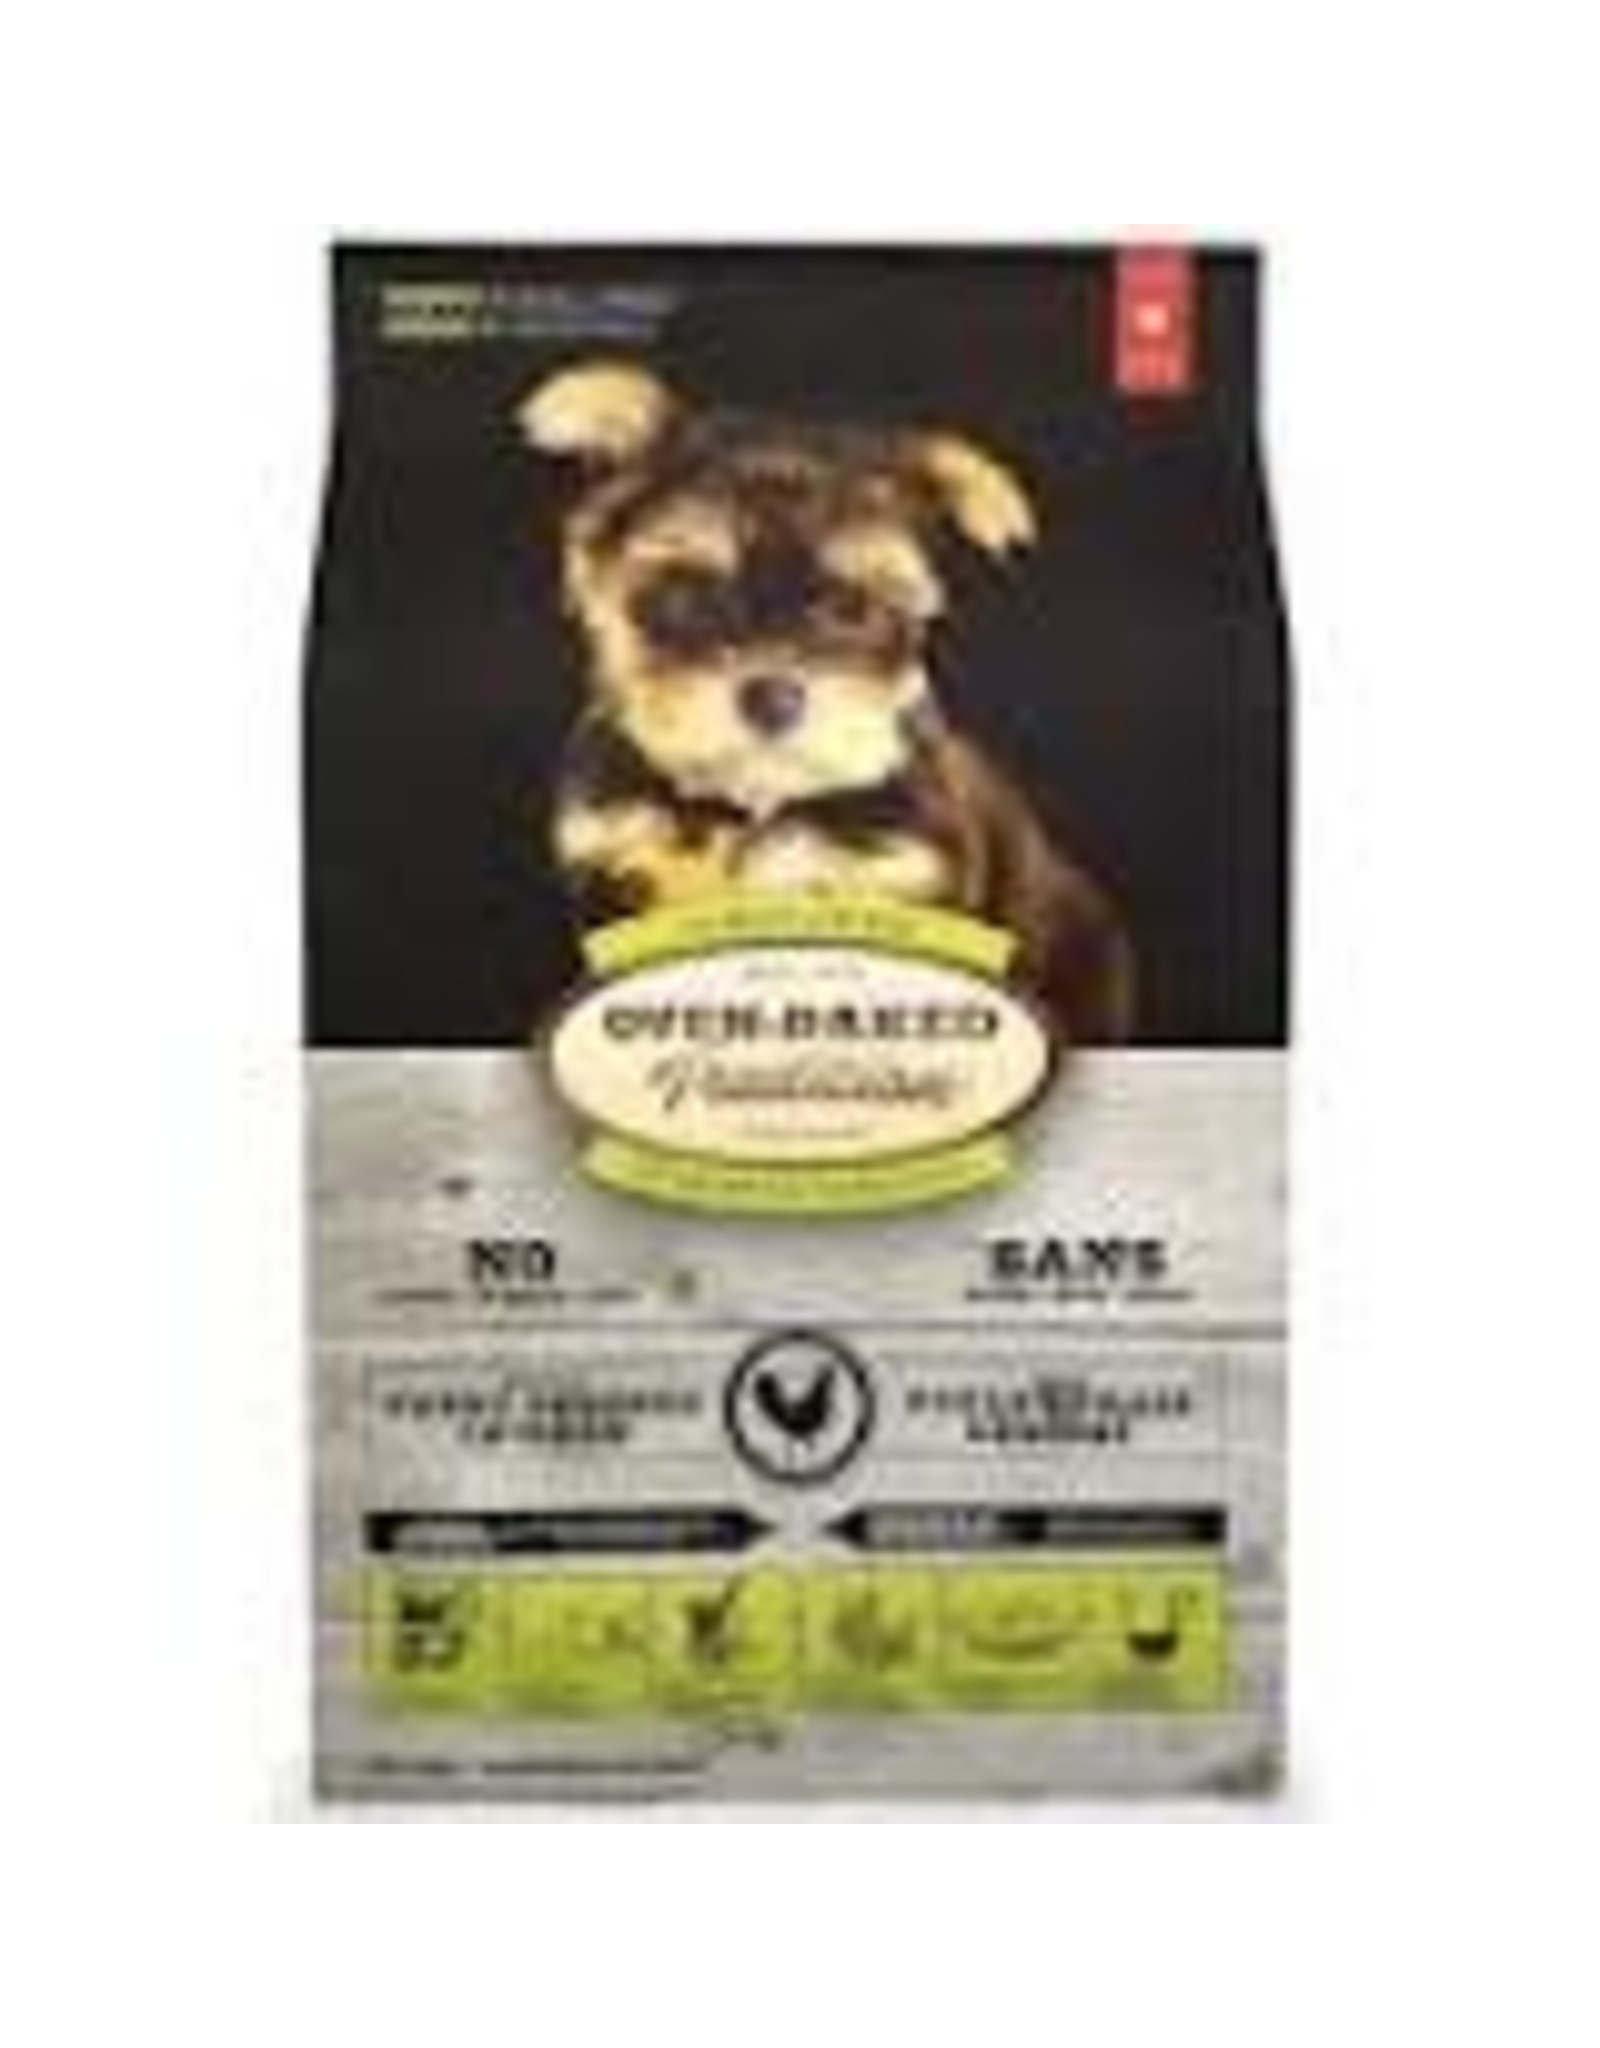 Oven Baked Tradition Oven Baked Tradition - Puppy Small Breed